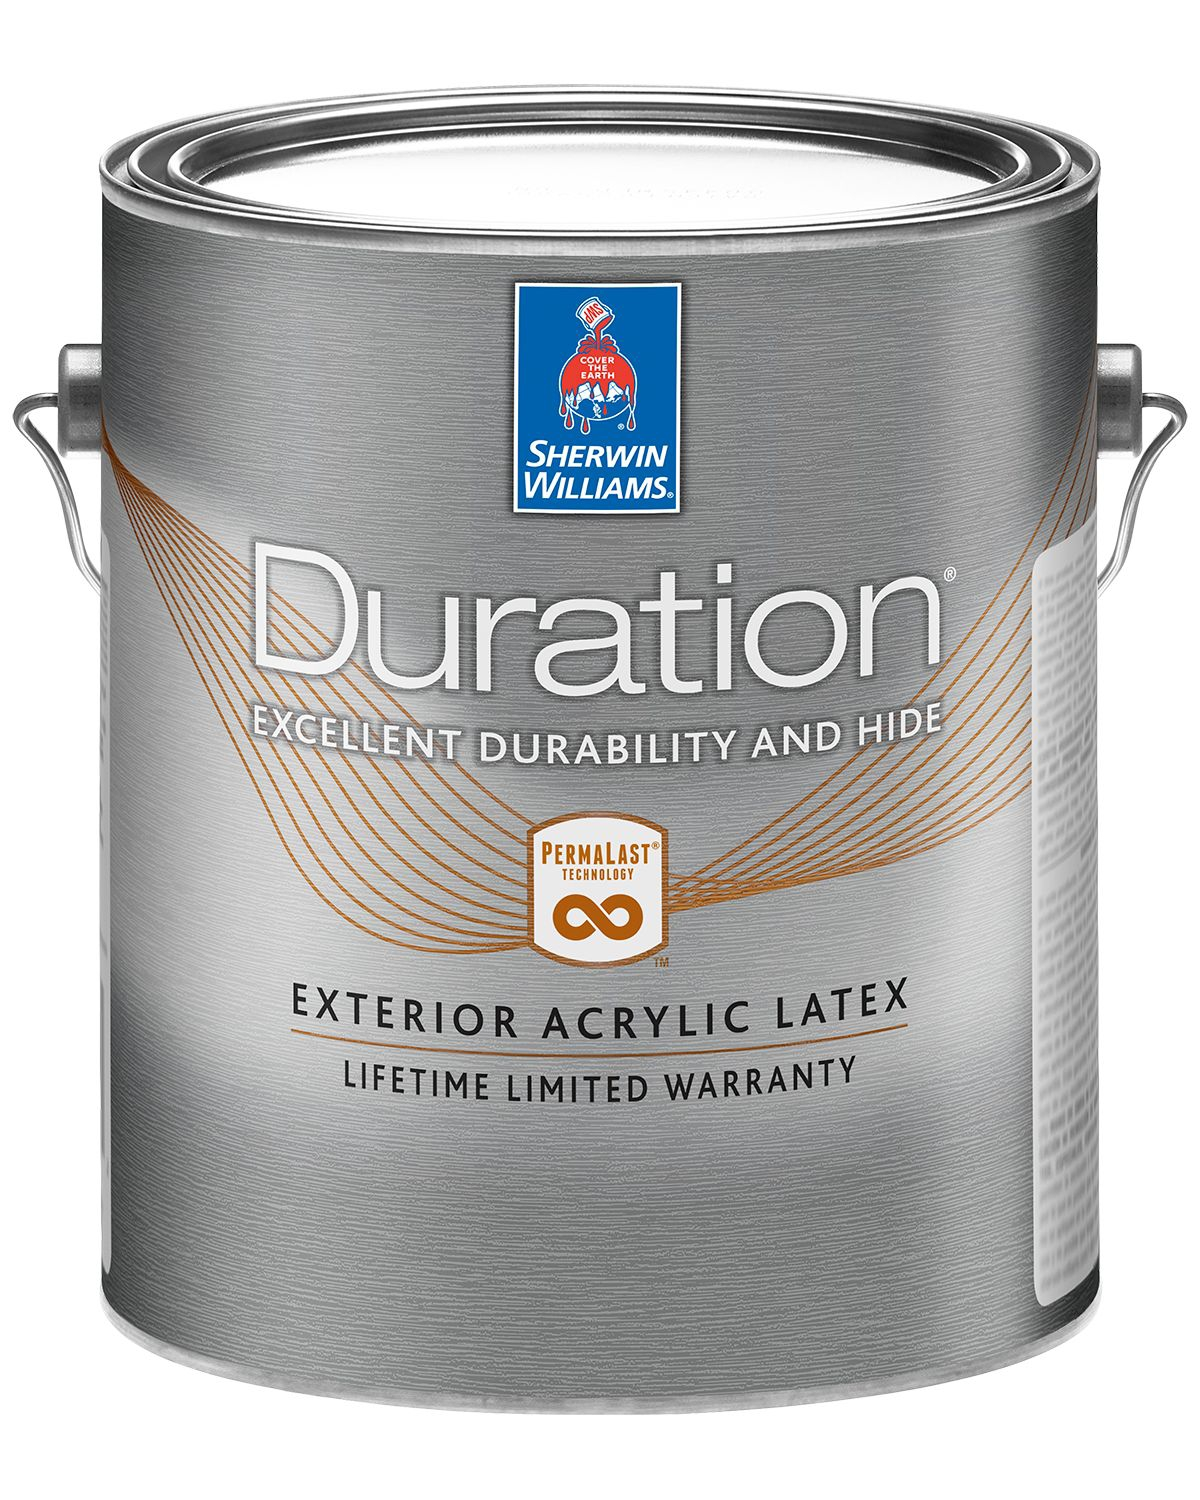 Duration paint can